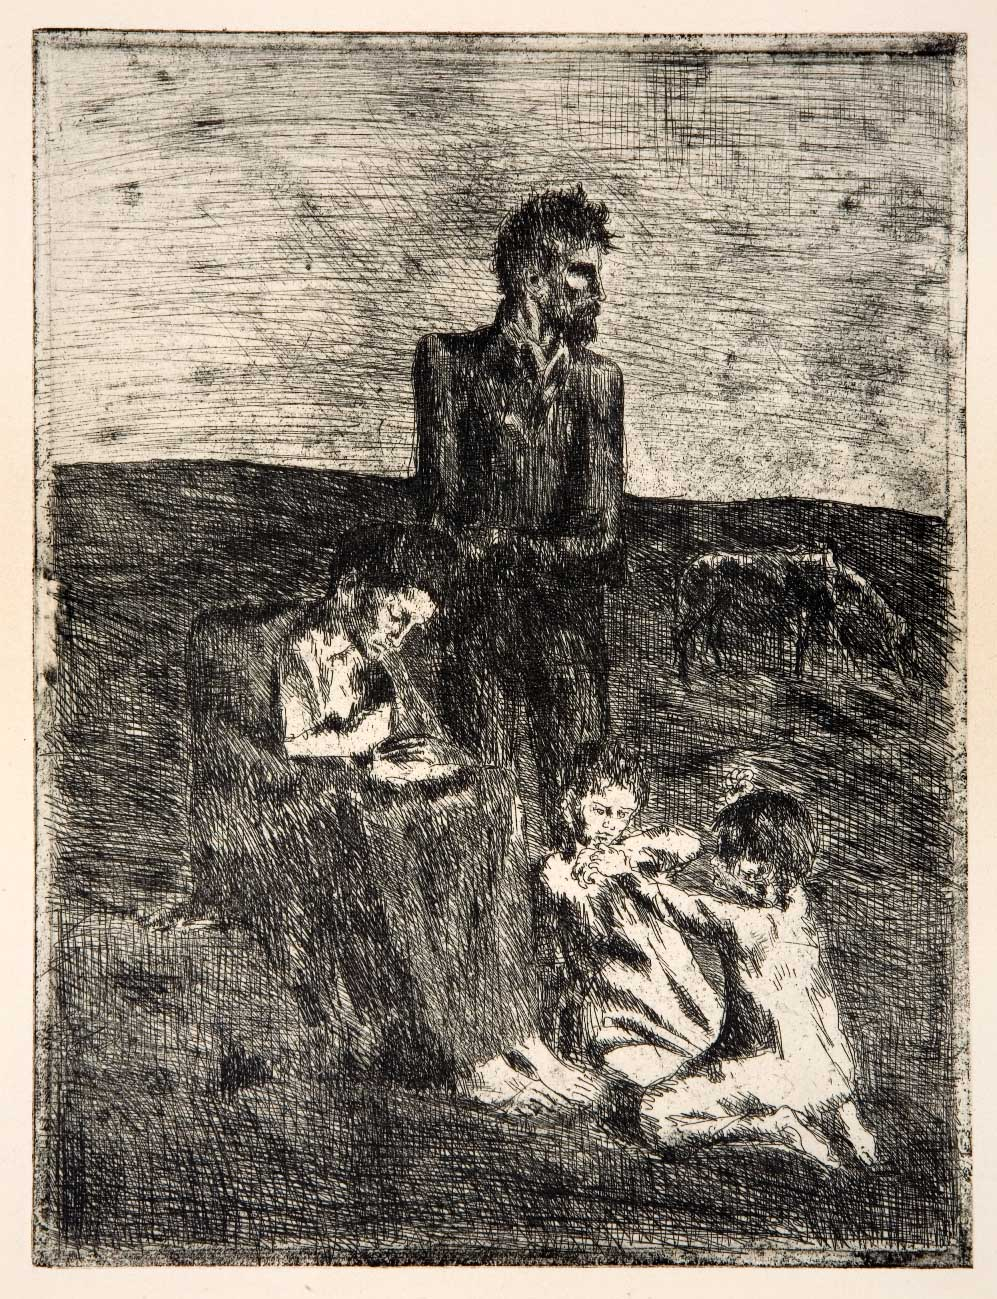 Pablo Picasso - I poveri - 1905 - incisione all'acquaforte